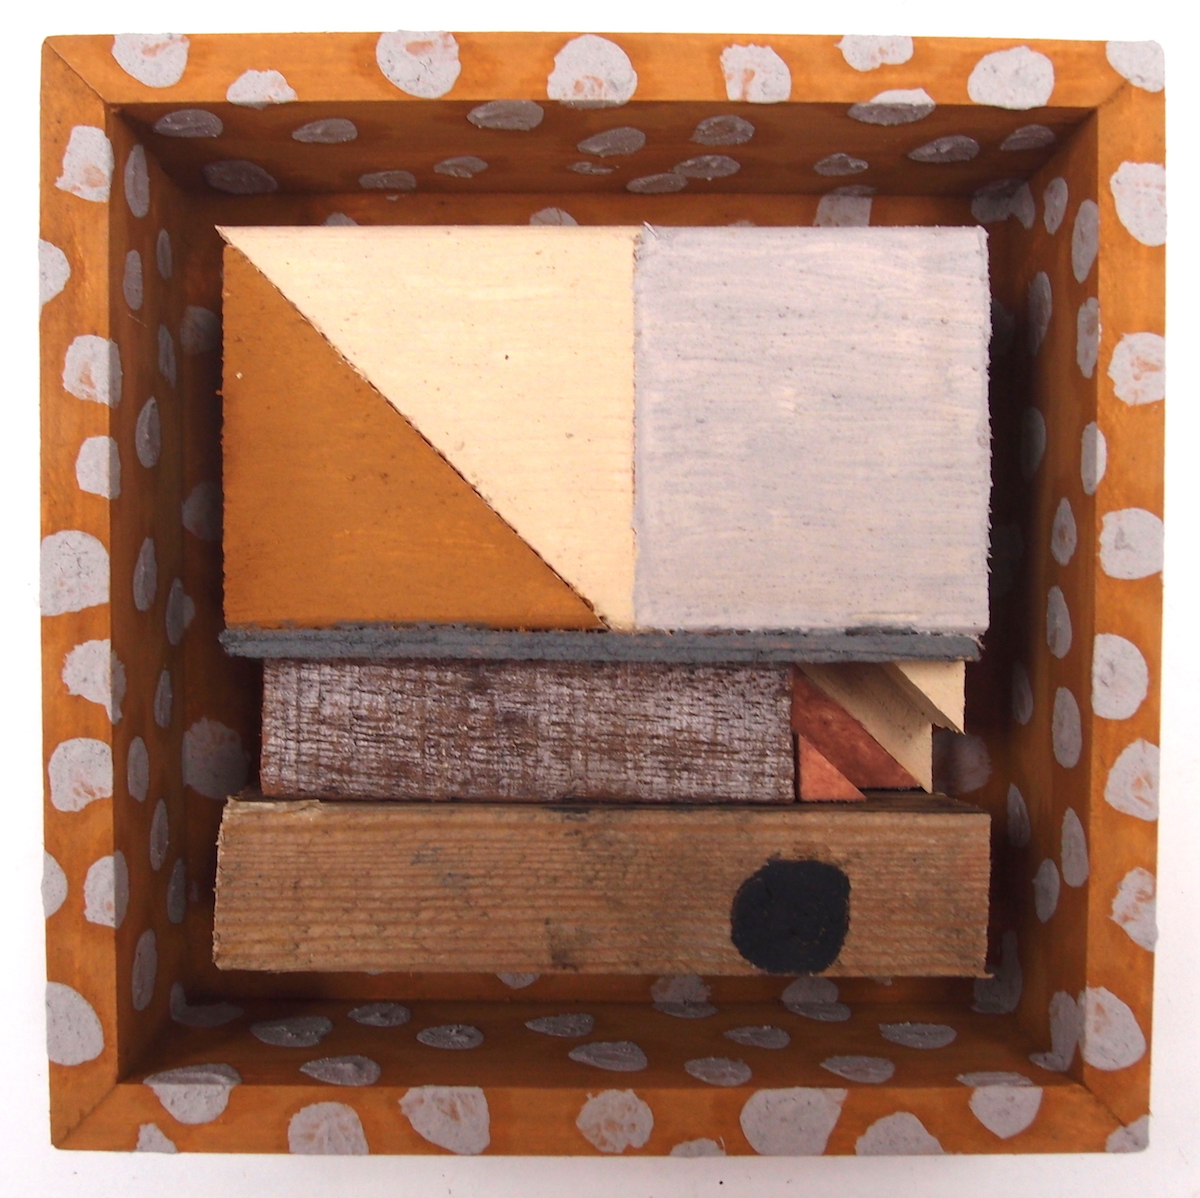 offcuts in an offcut frame viii - quite small (earth pigments on wood) © p ward 2017